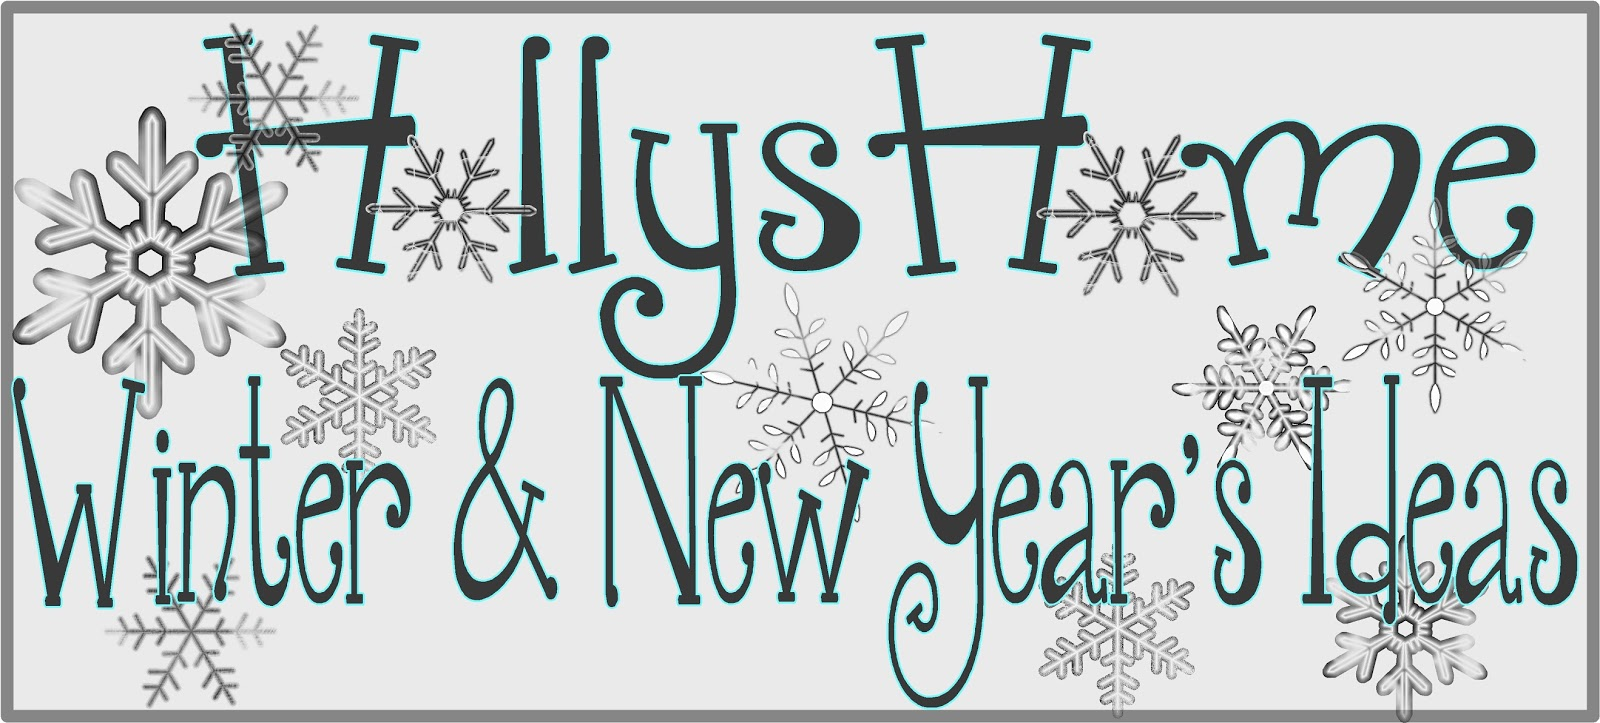 http://hollyshome-hollyshome.blogspot.com/p/fun-and-free-new-year-and-winter-ideas.html